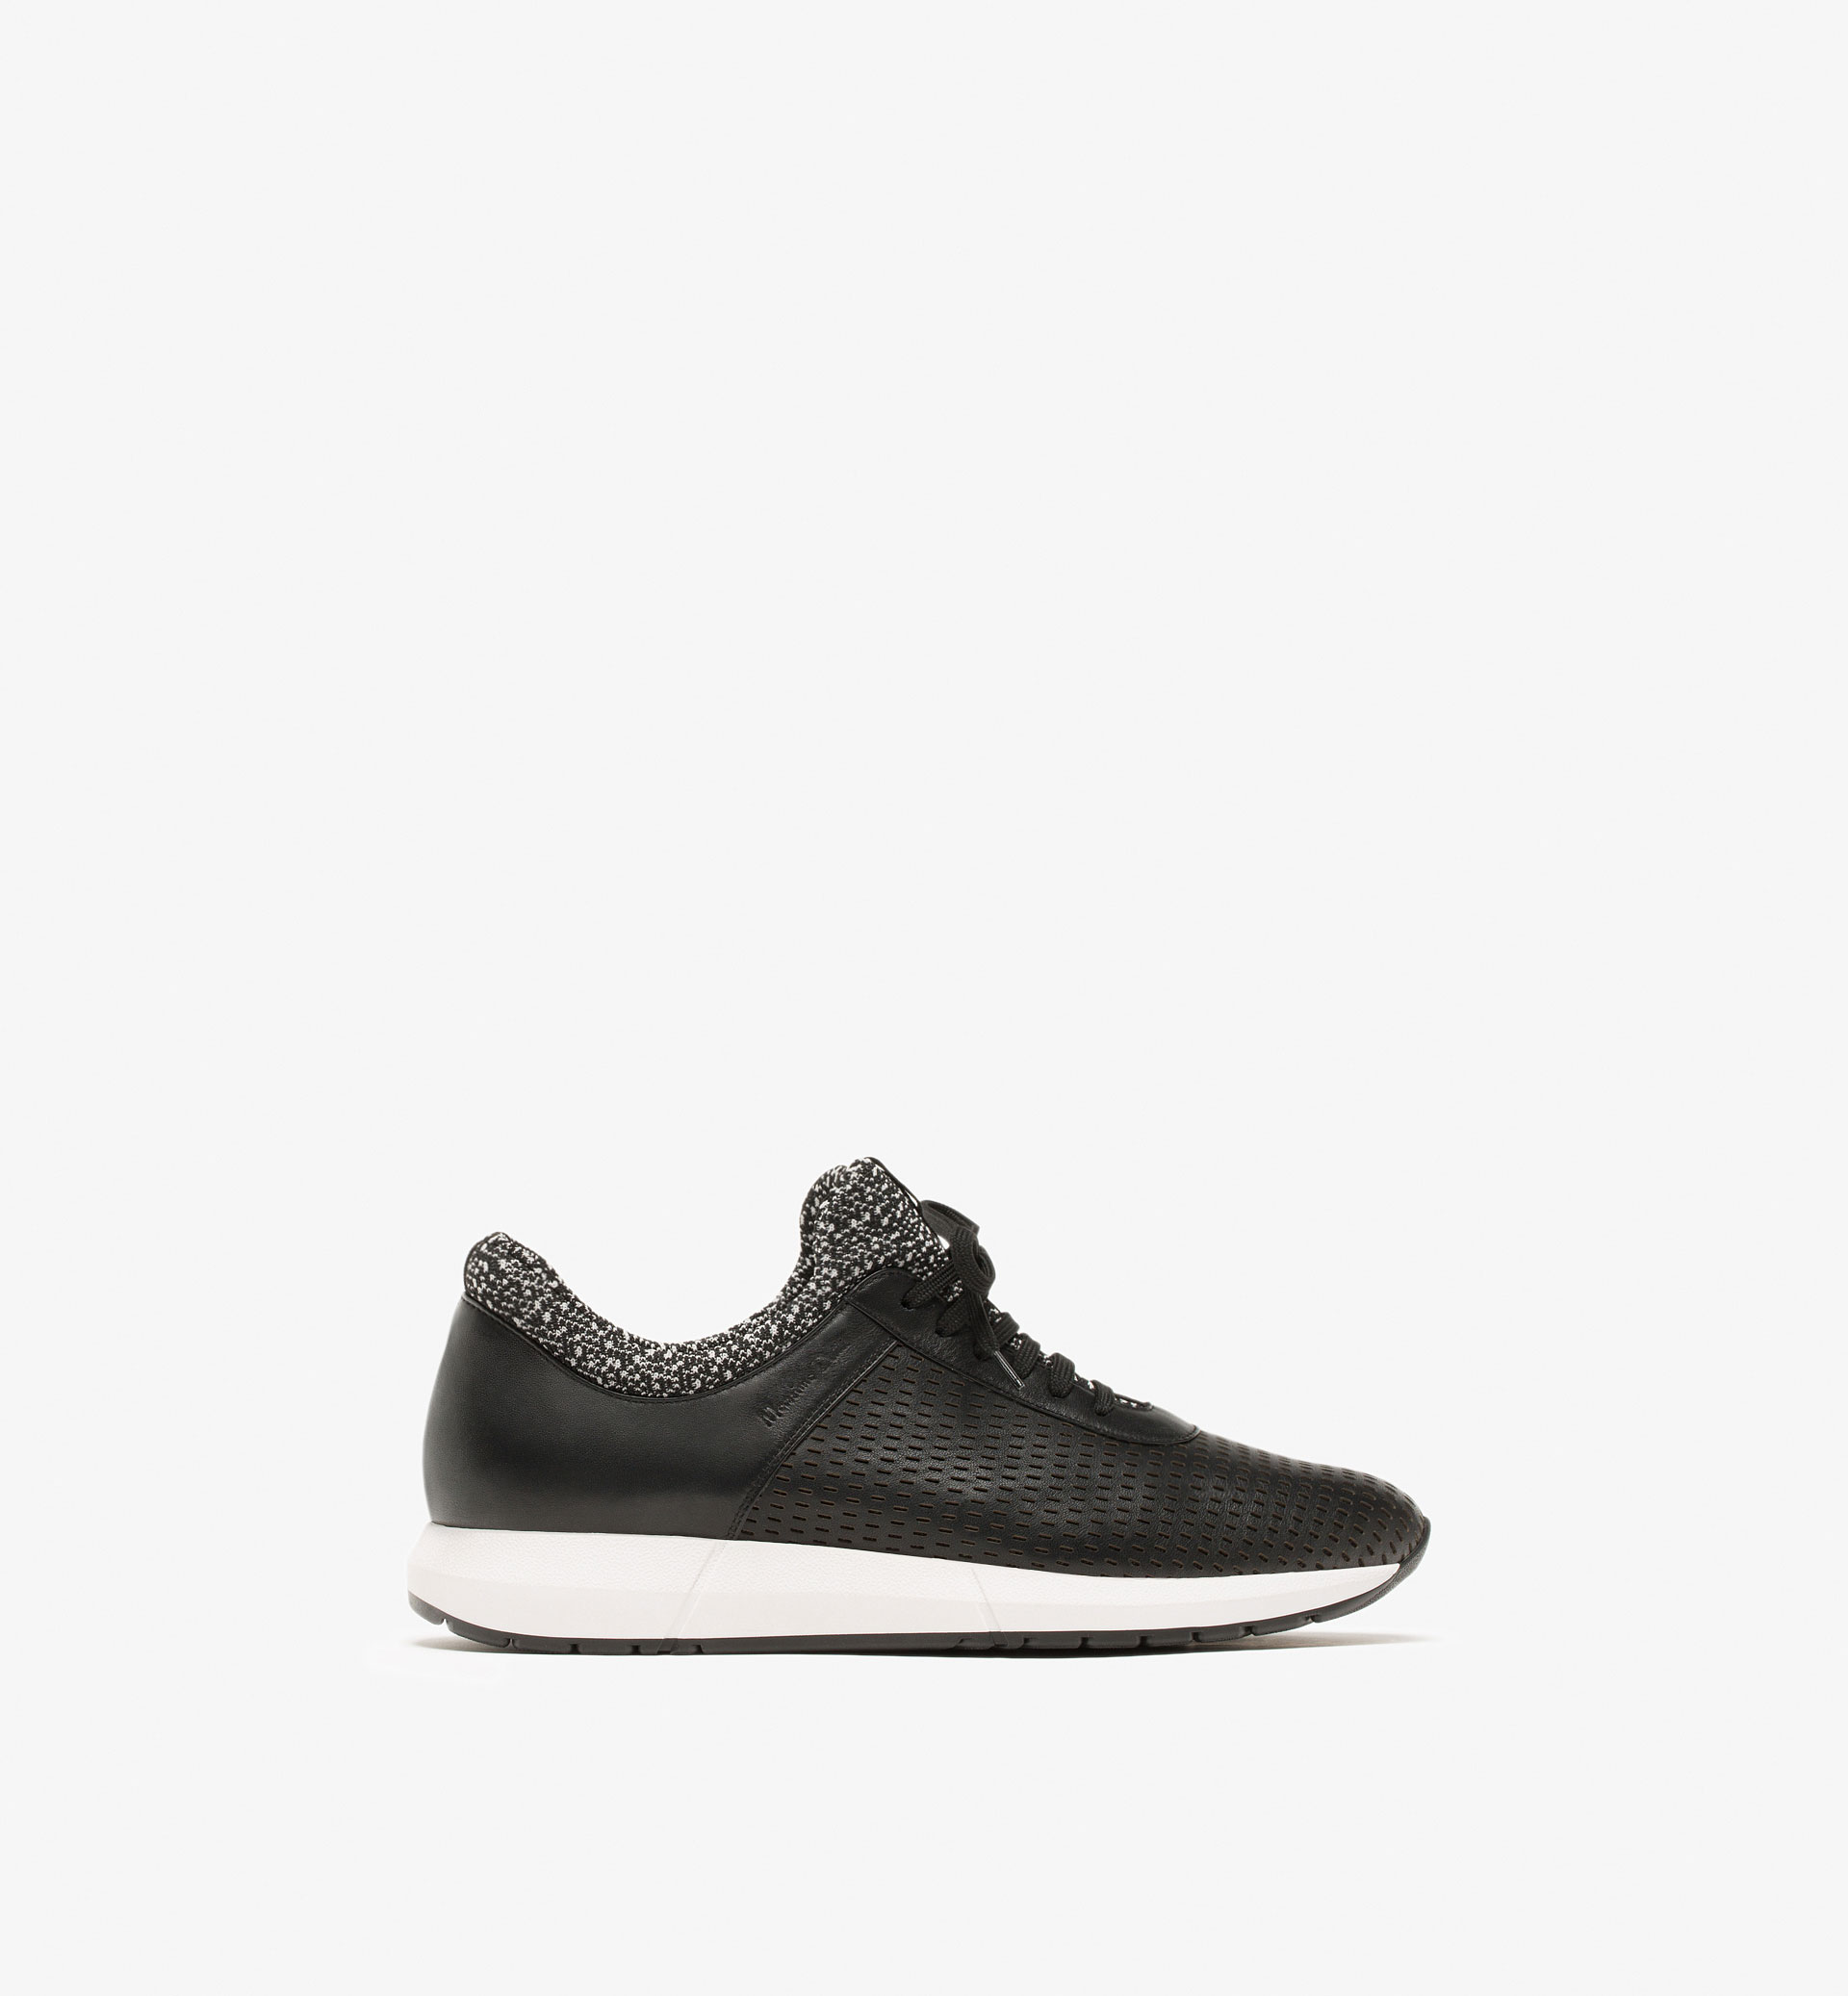 SOFT OPENWORK LEATHER SNEAKERS